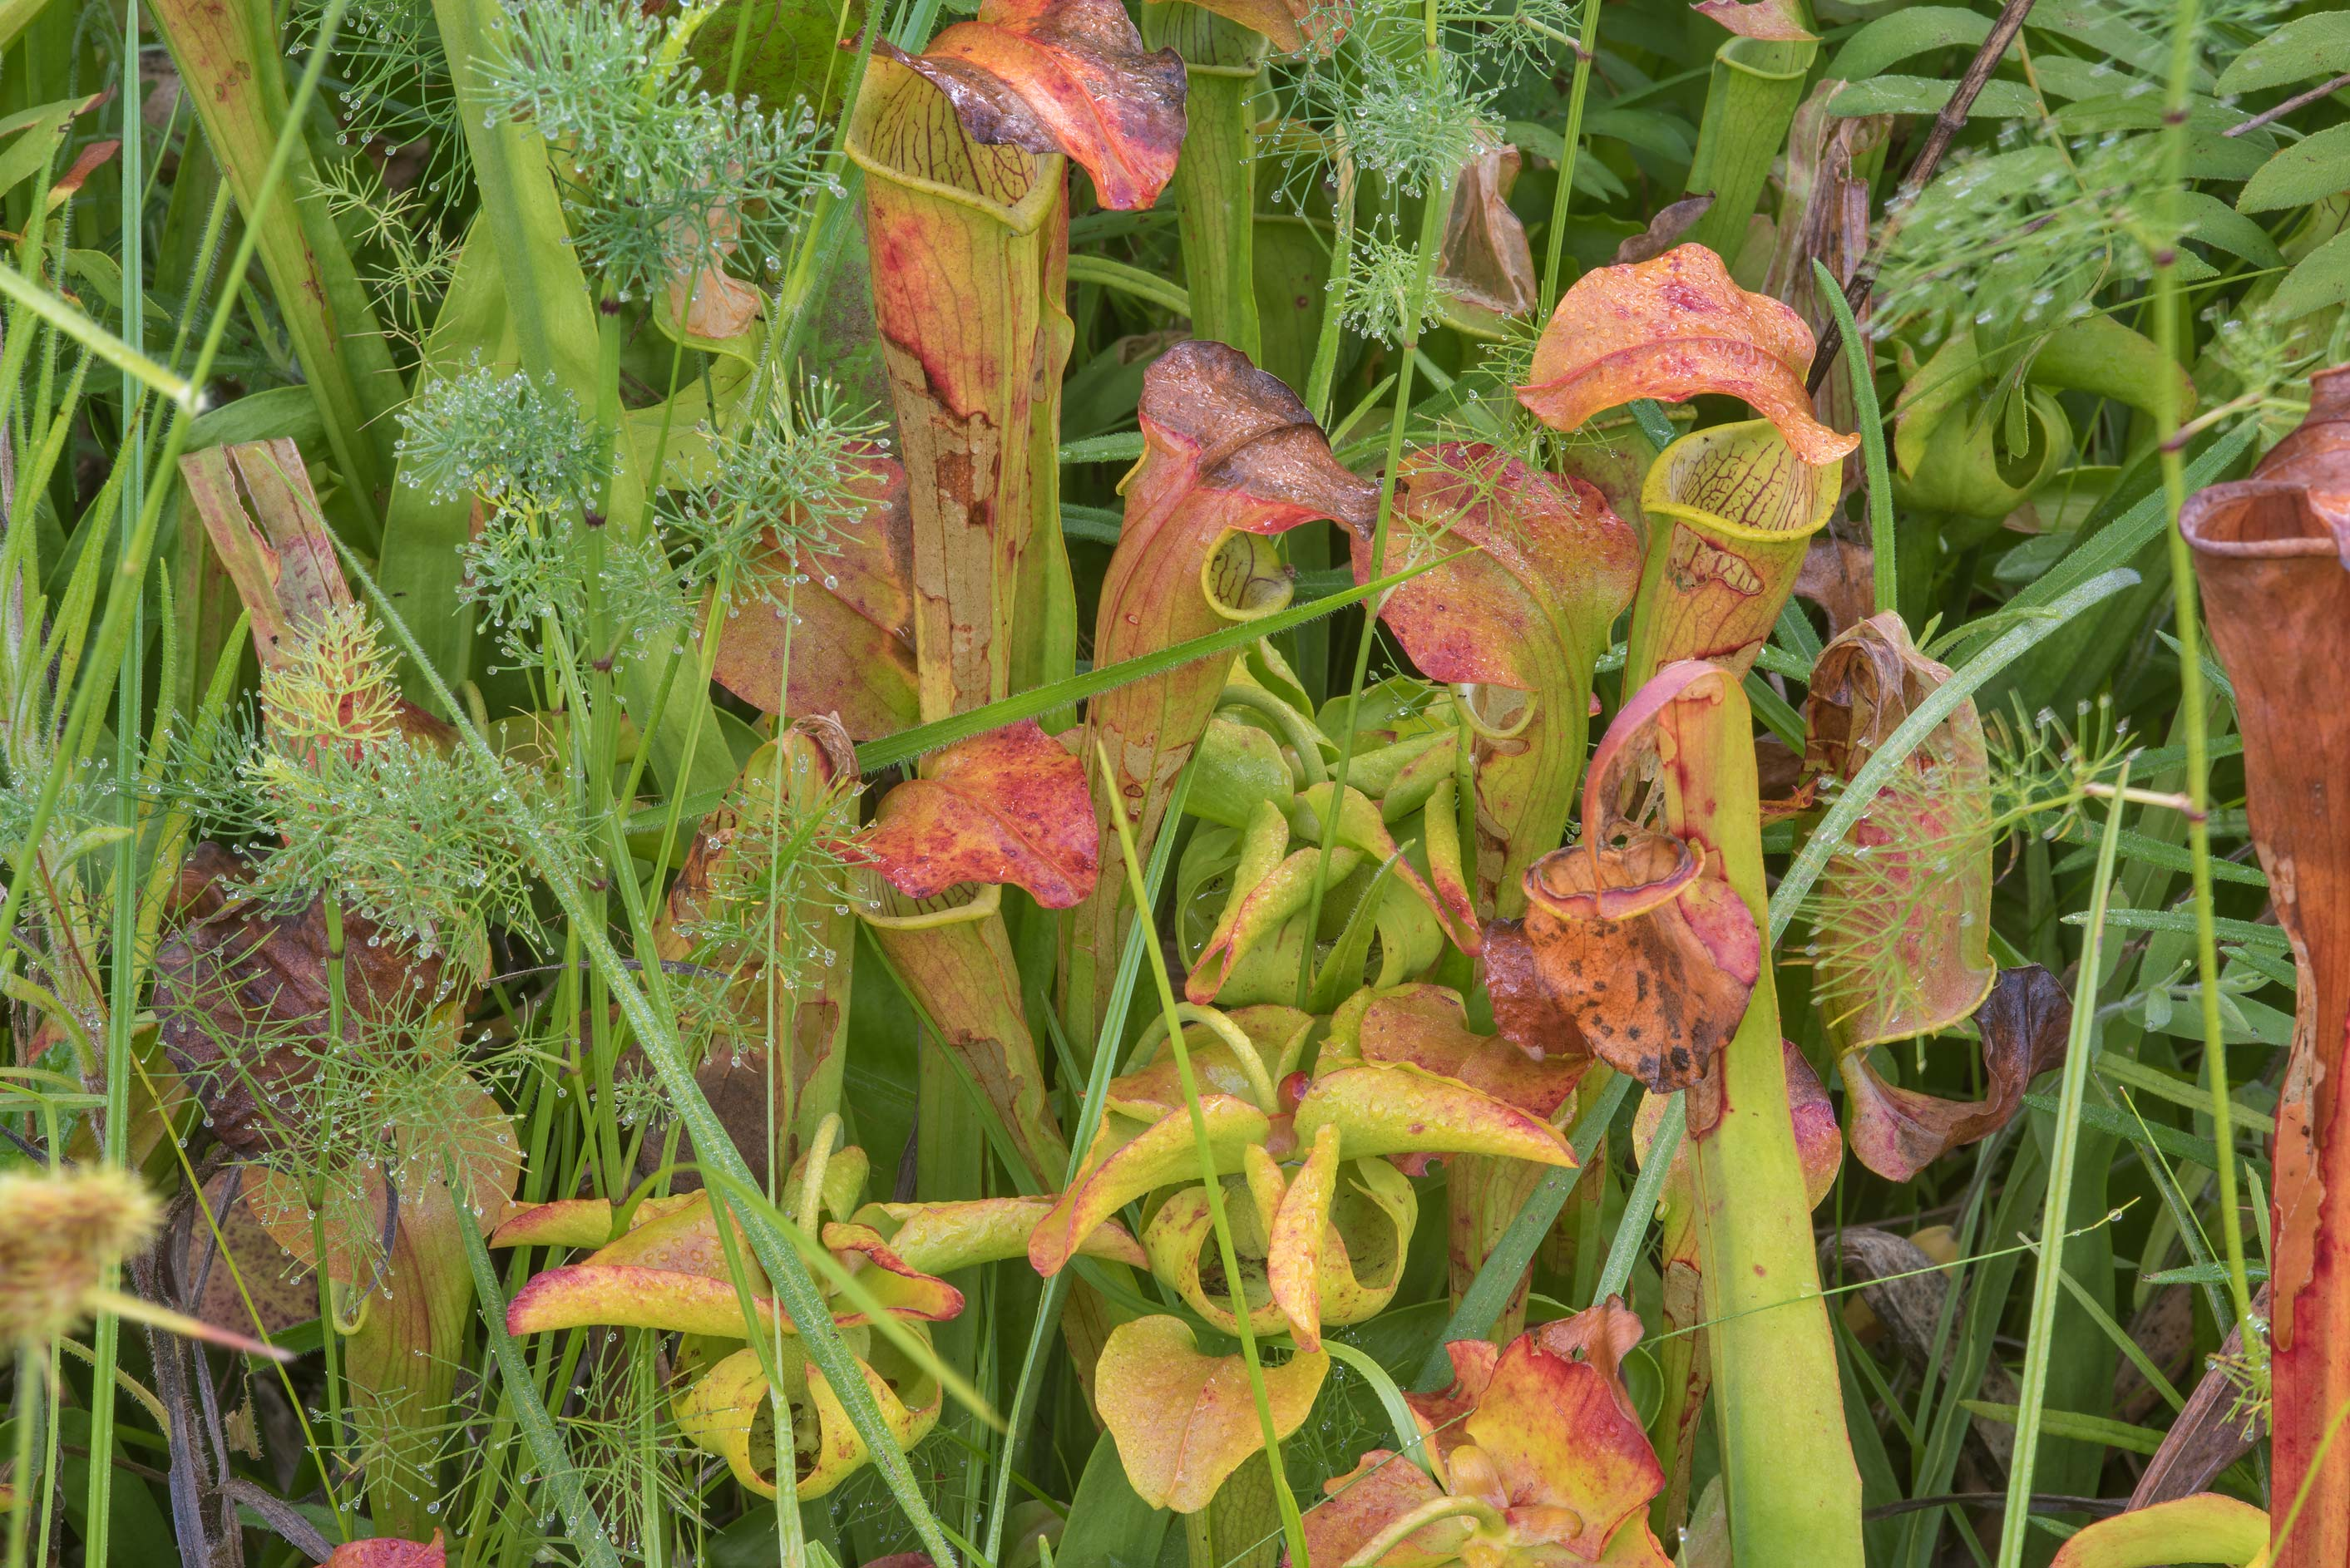 Pitcher plant (Sarracenia alata) near a pond in...Native Plant Preserve. Warren, Texas